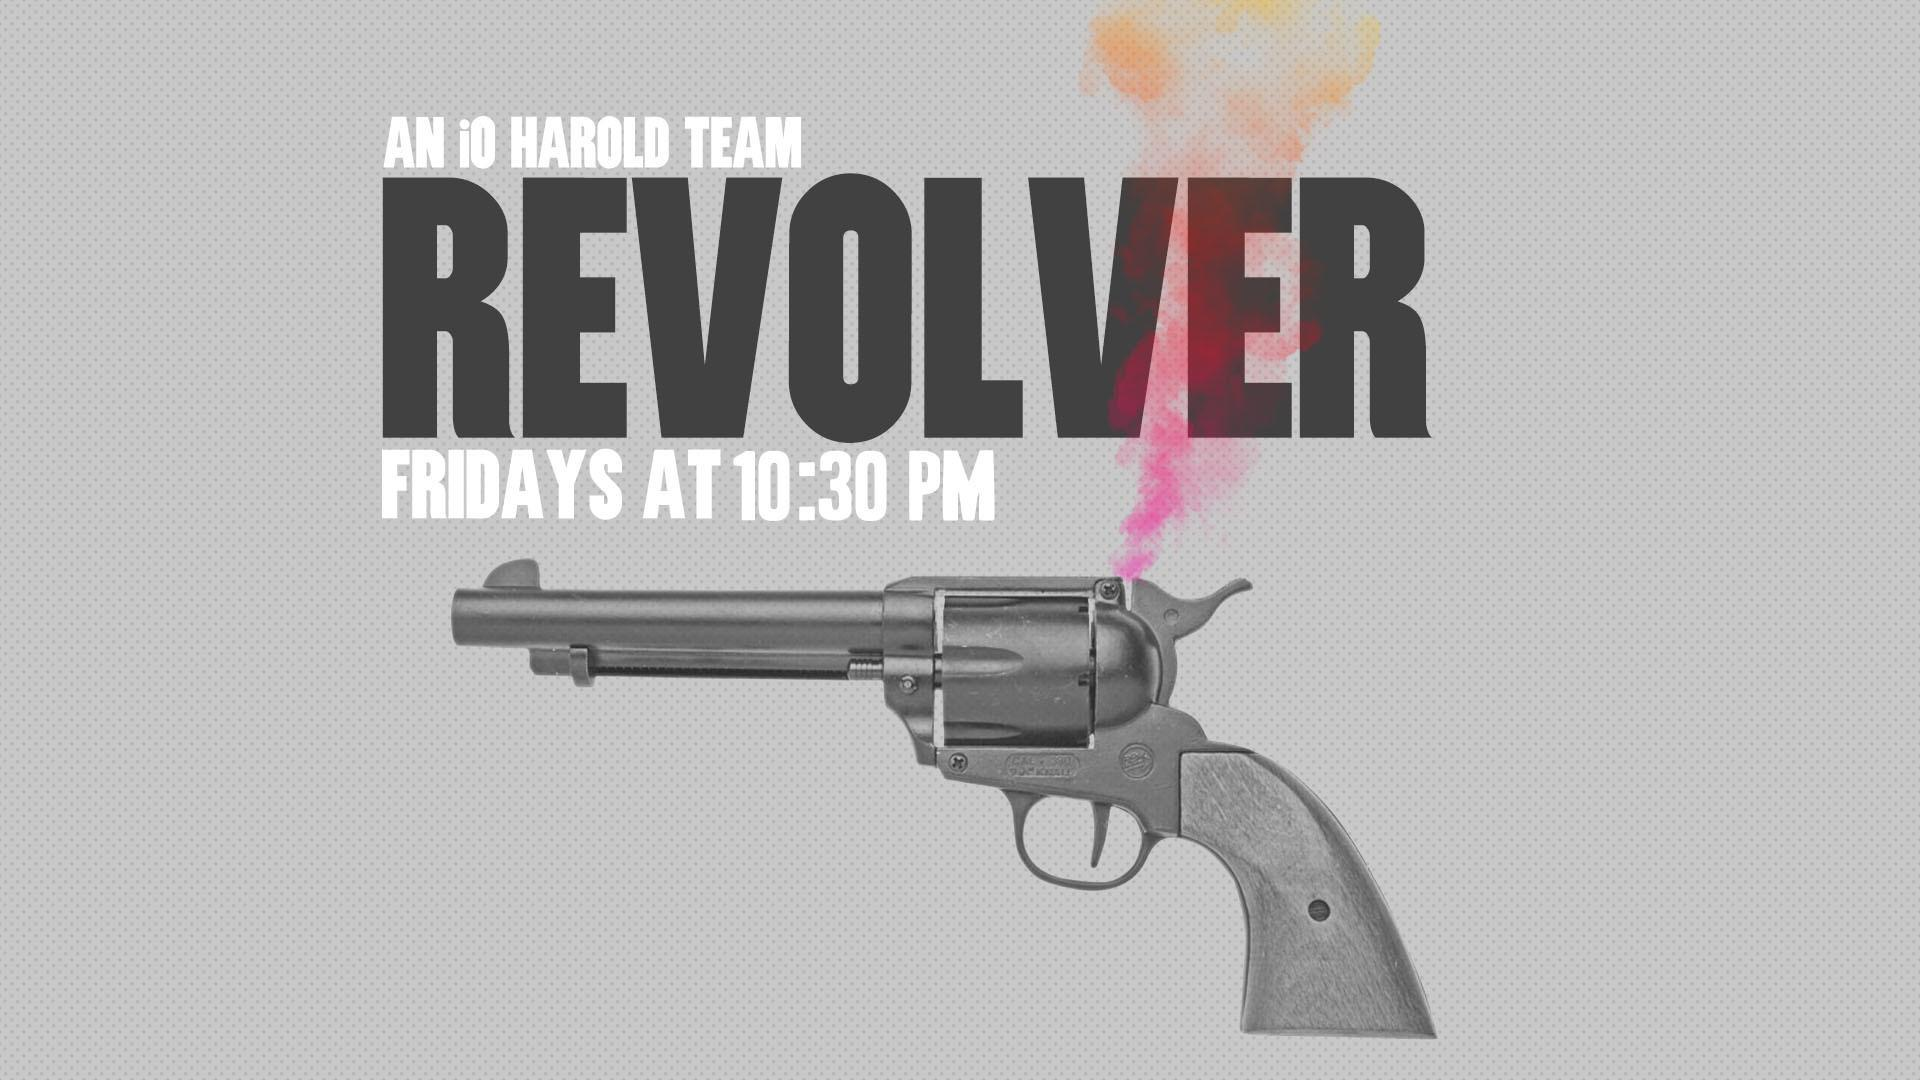 HAROLD NIGHT w/ Revolver & The Harold Team Macbeth